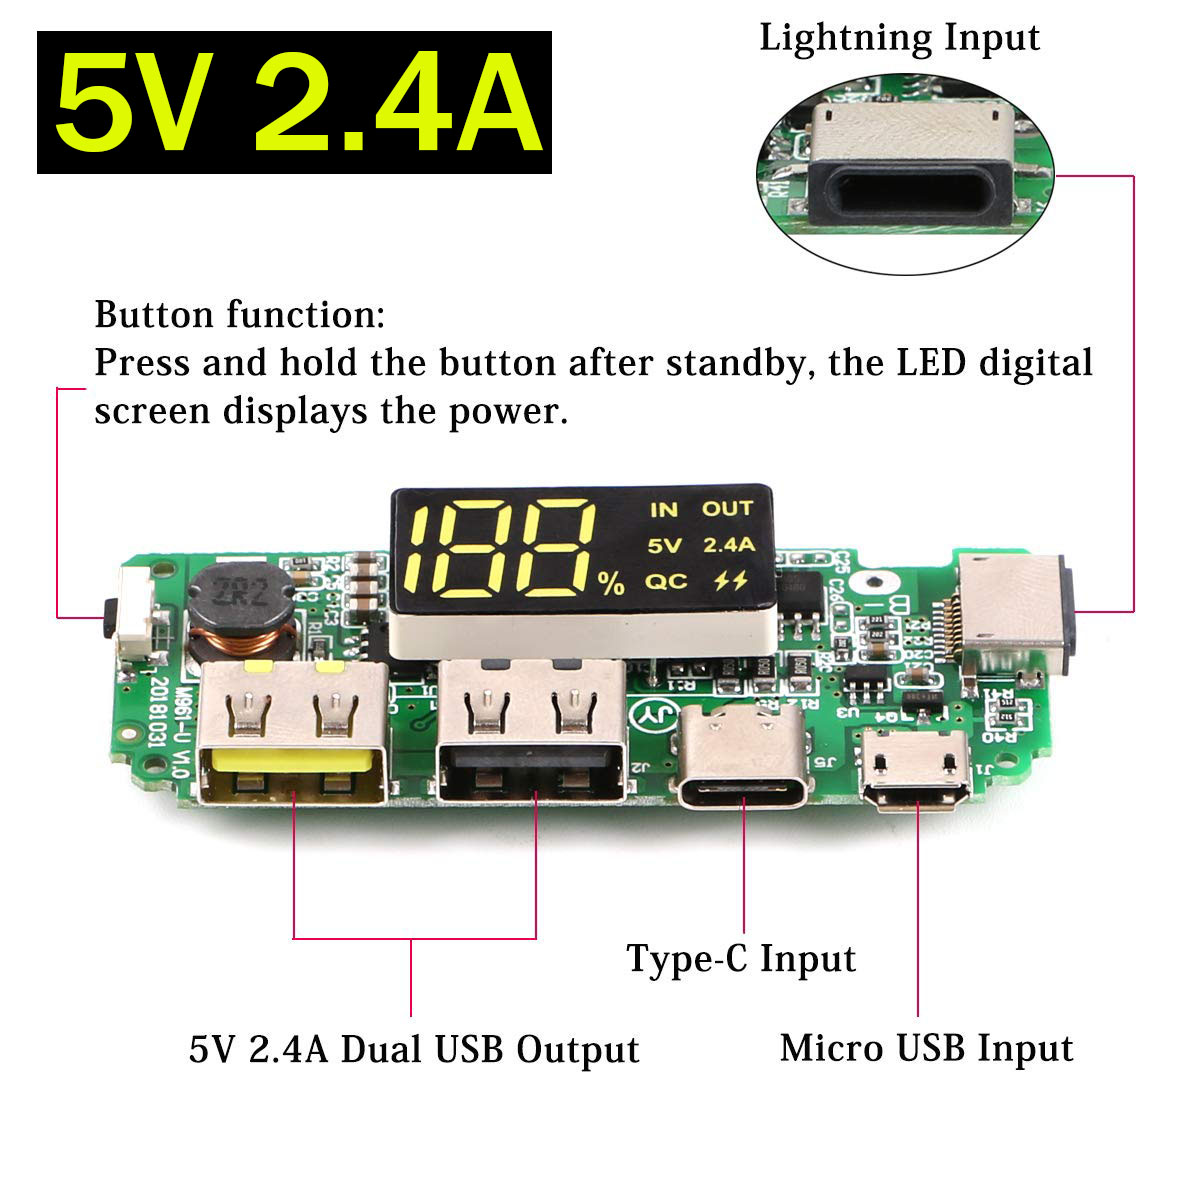 LED Screen Dual USB Micro USB Type-C Power Display Power Bank <font><b>18650</b></font> Battery Charger Overload Short <font><b>Circuit</b></font> <font><b>Protection</b></font> Board image